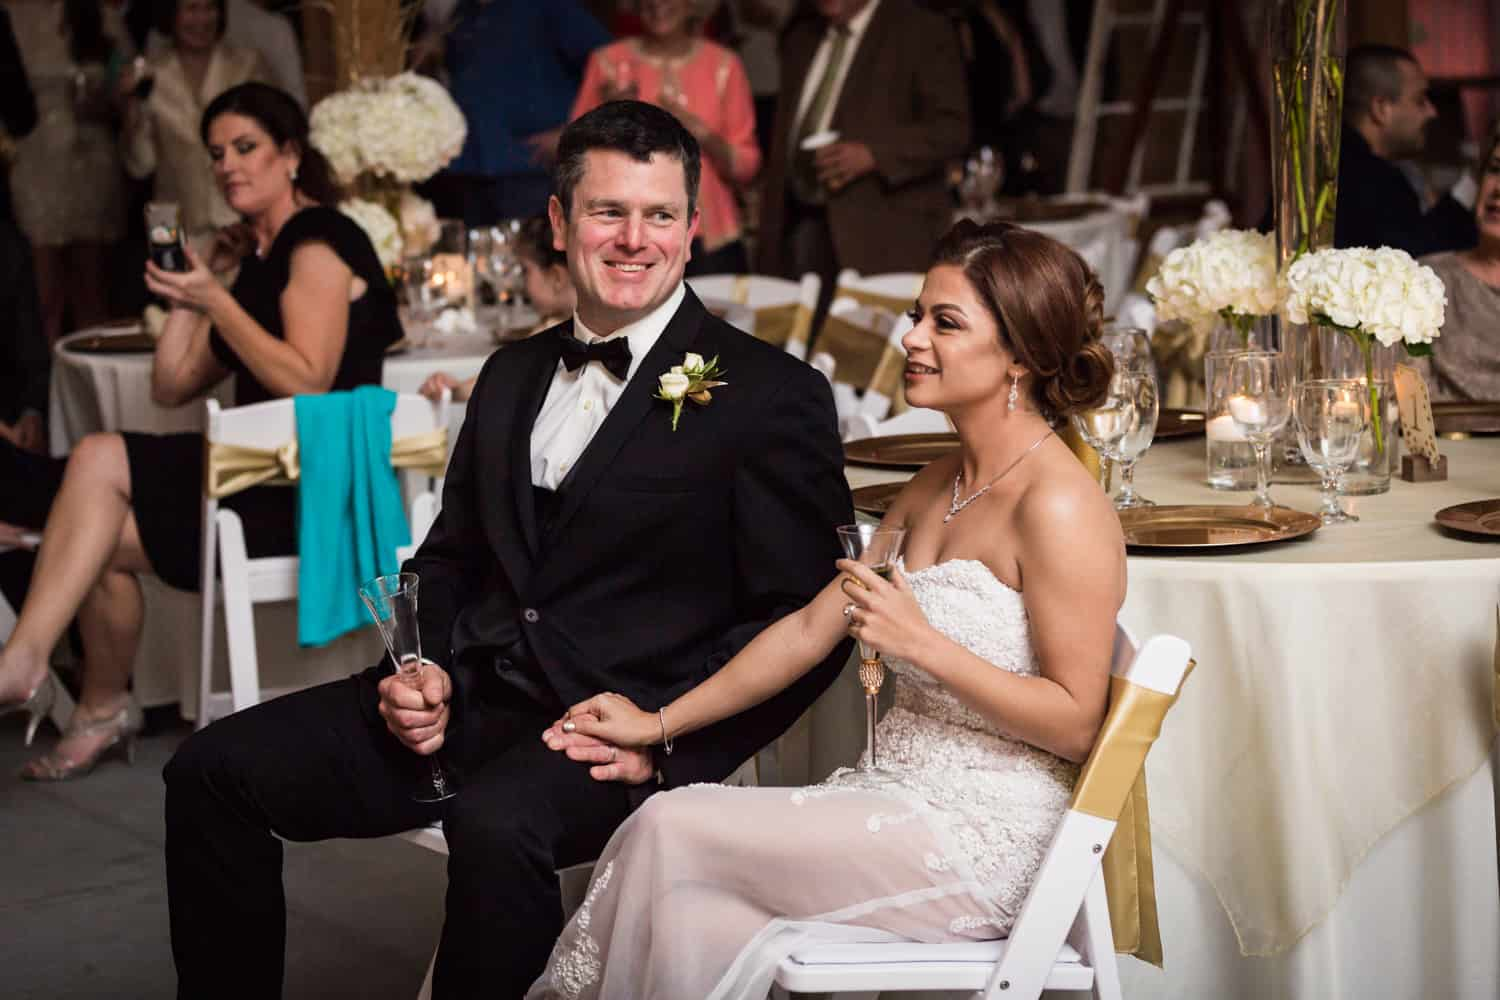 Bride and groom listening to speeches during Florida wedding reception